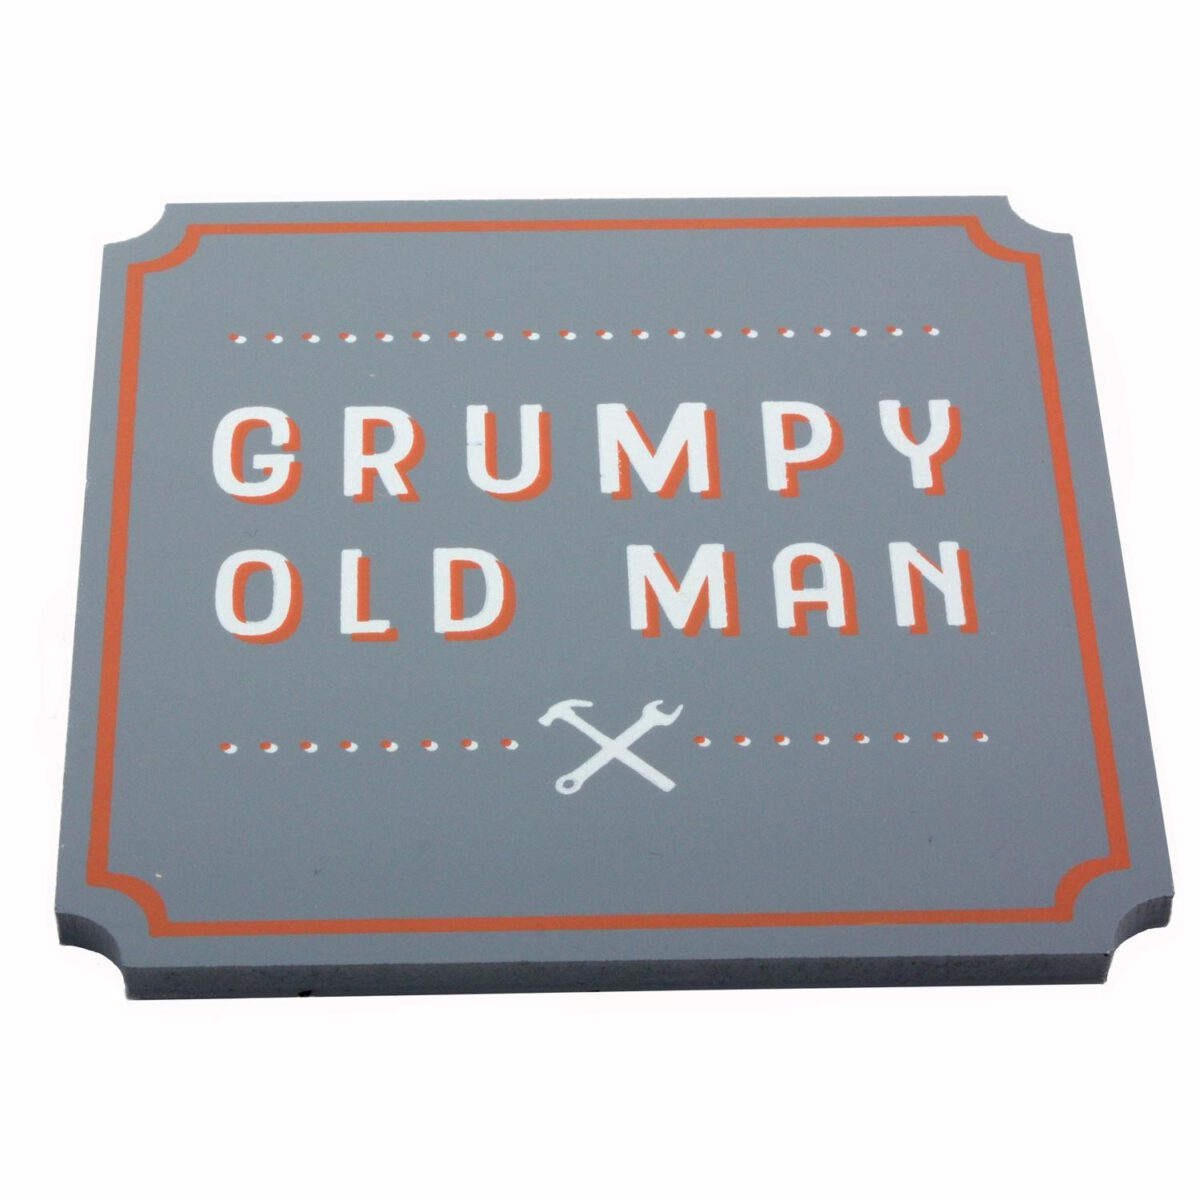 The Hardware Store Wooden Coaster - Grumpy Old Man-0